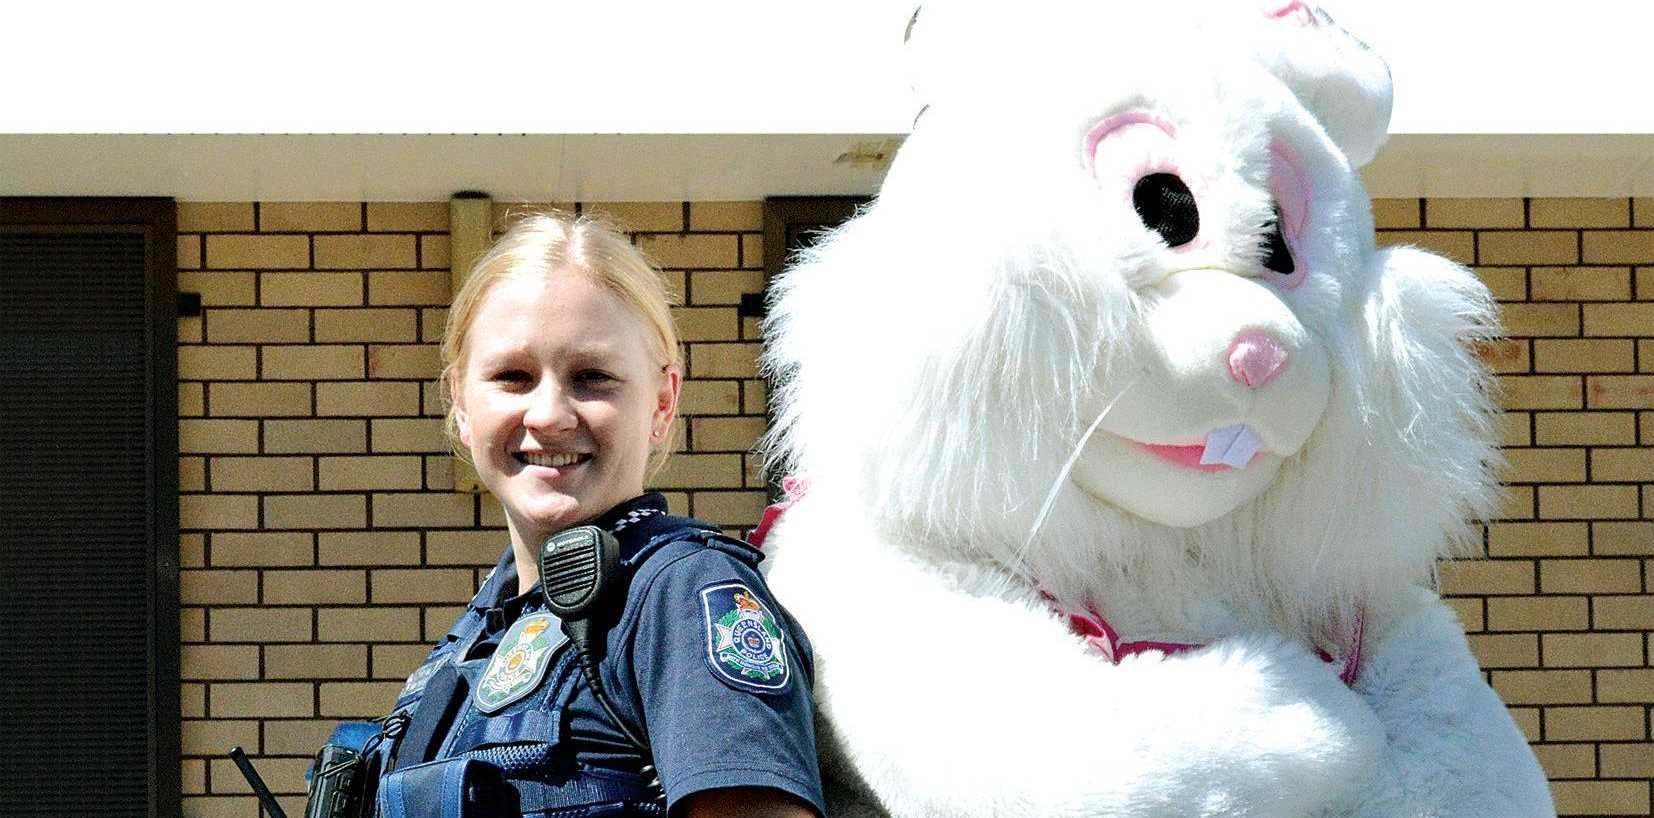 ROAD SAFETY: Dalby police officer Gabby Walter and the Easter Bunny are urging motorists to take care this Easter weekend.